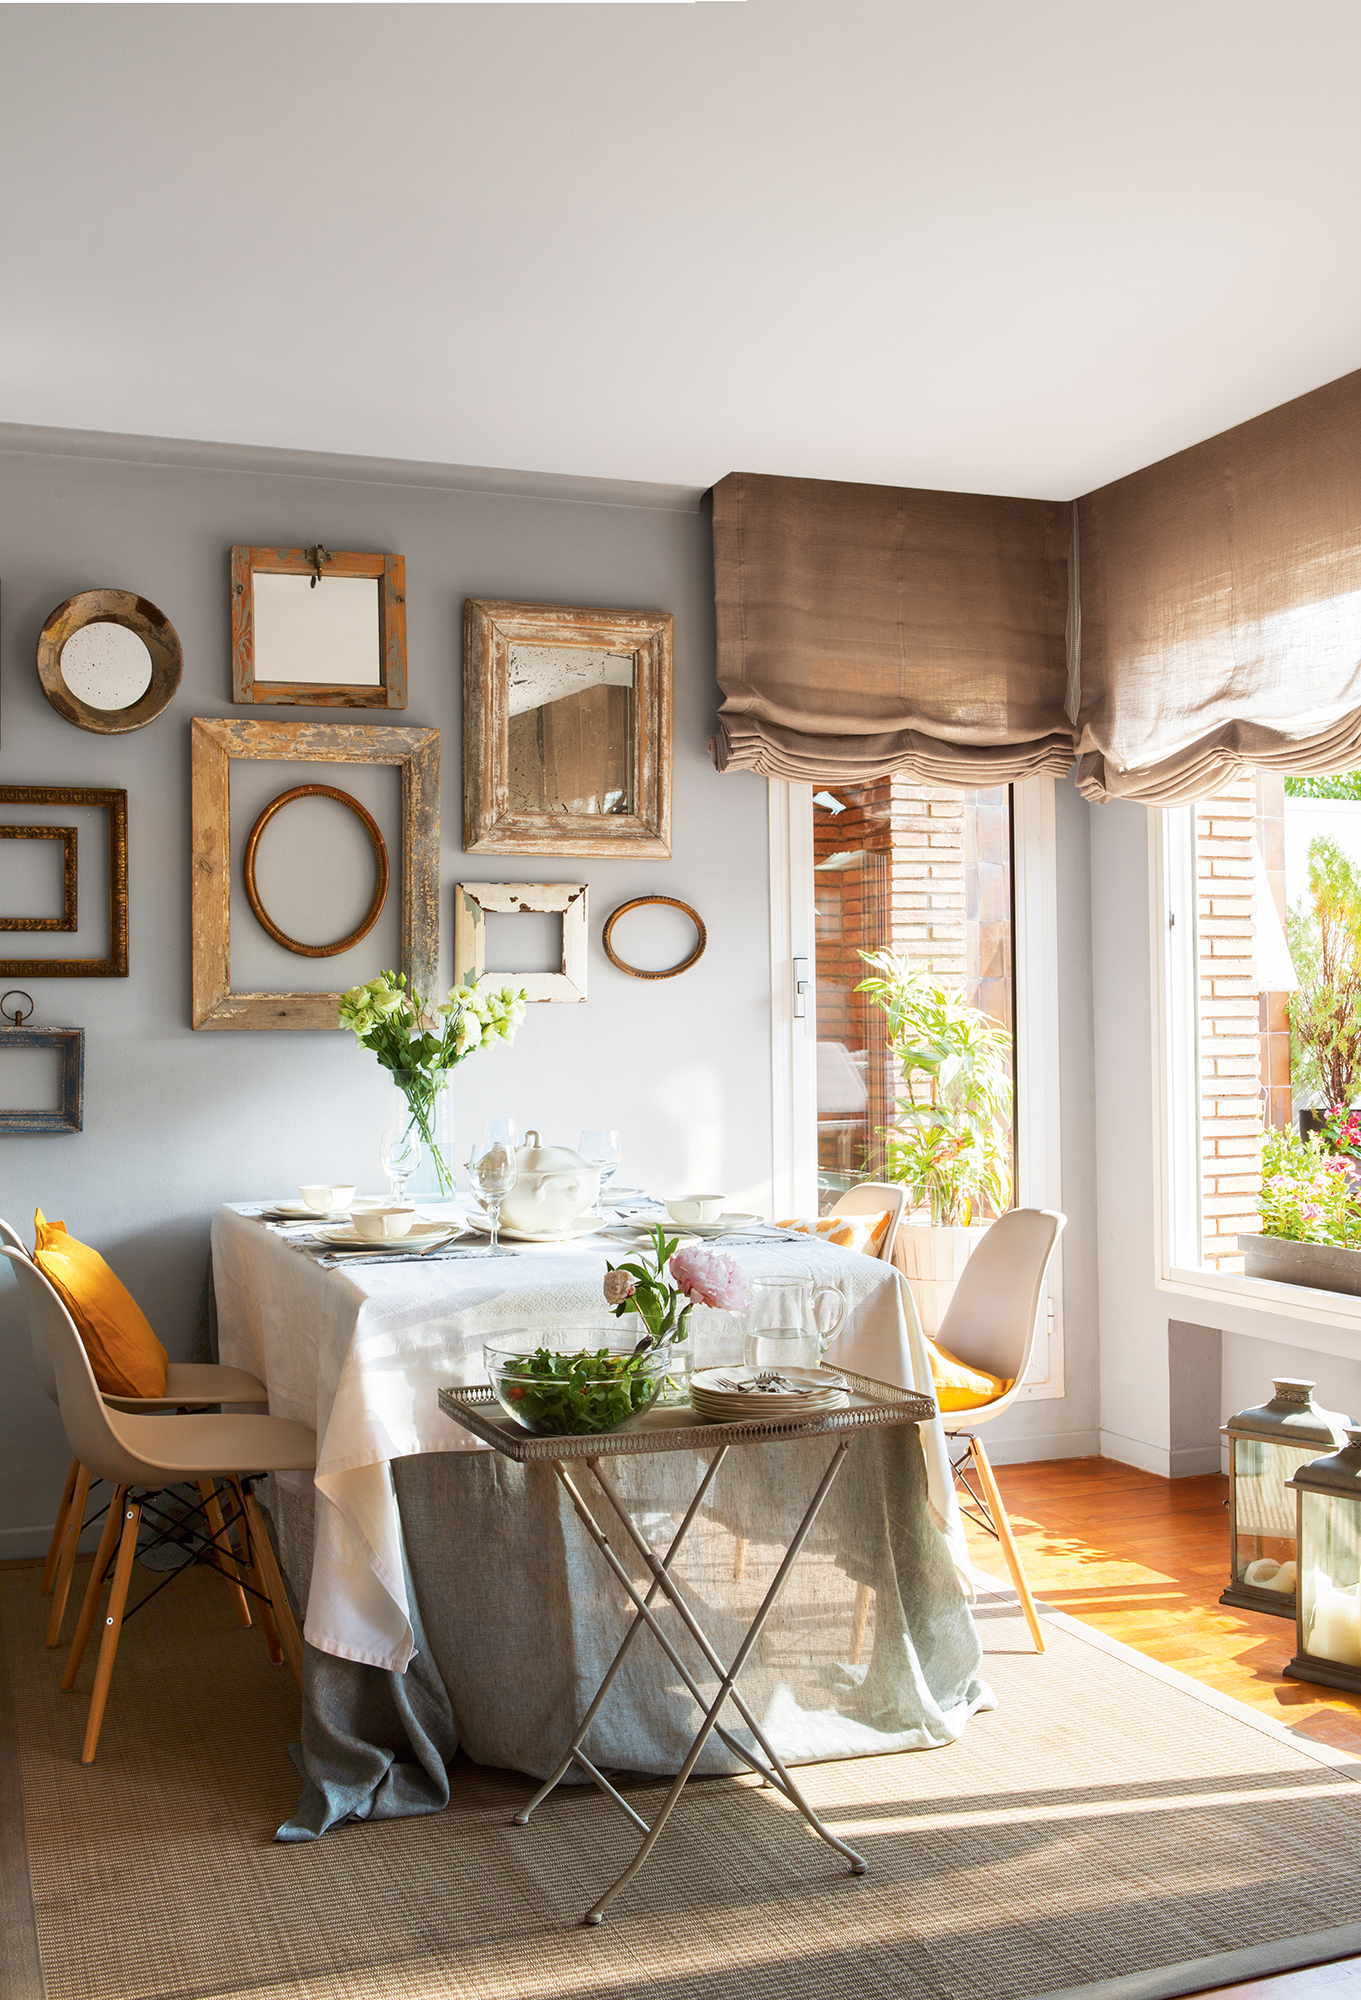 Comedor 15 ideas para decorar sus paredes - Decoraciones de pared ...